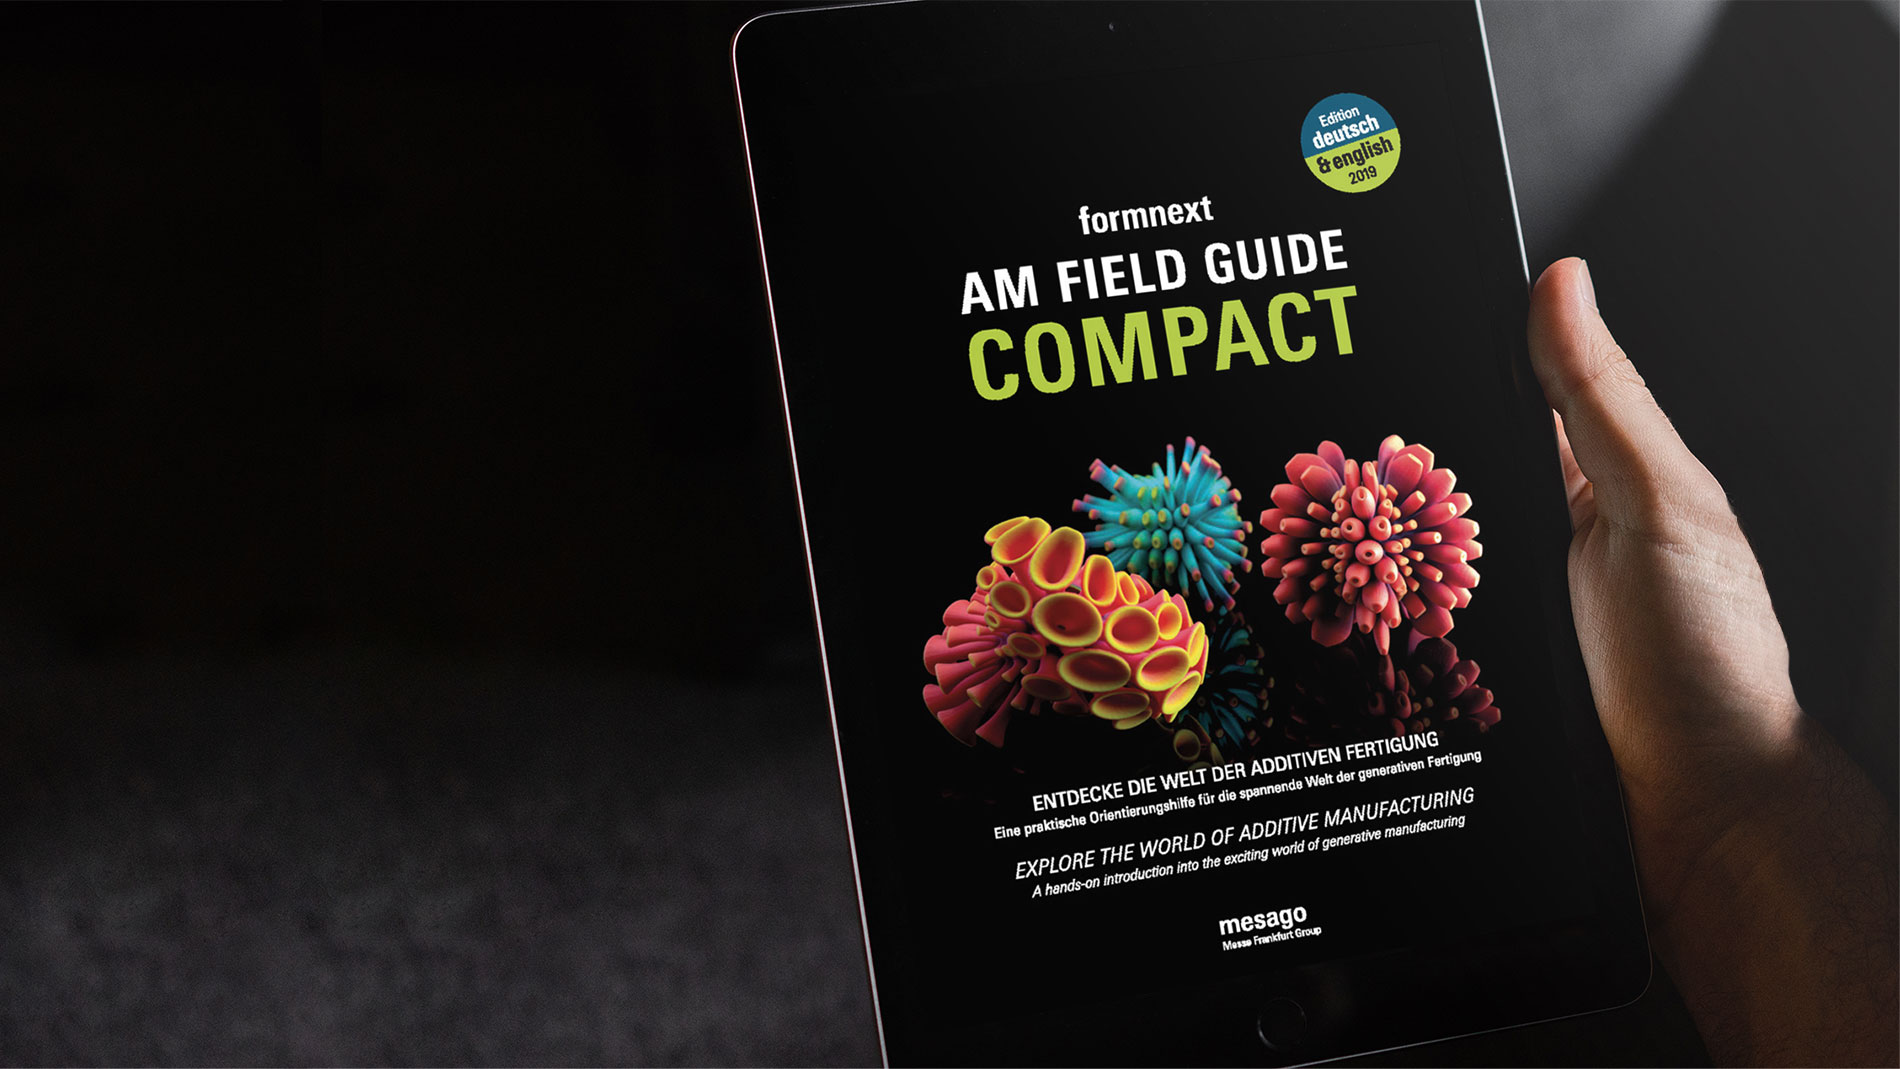 AM Field Guide